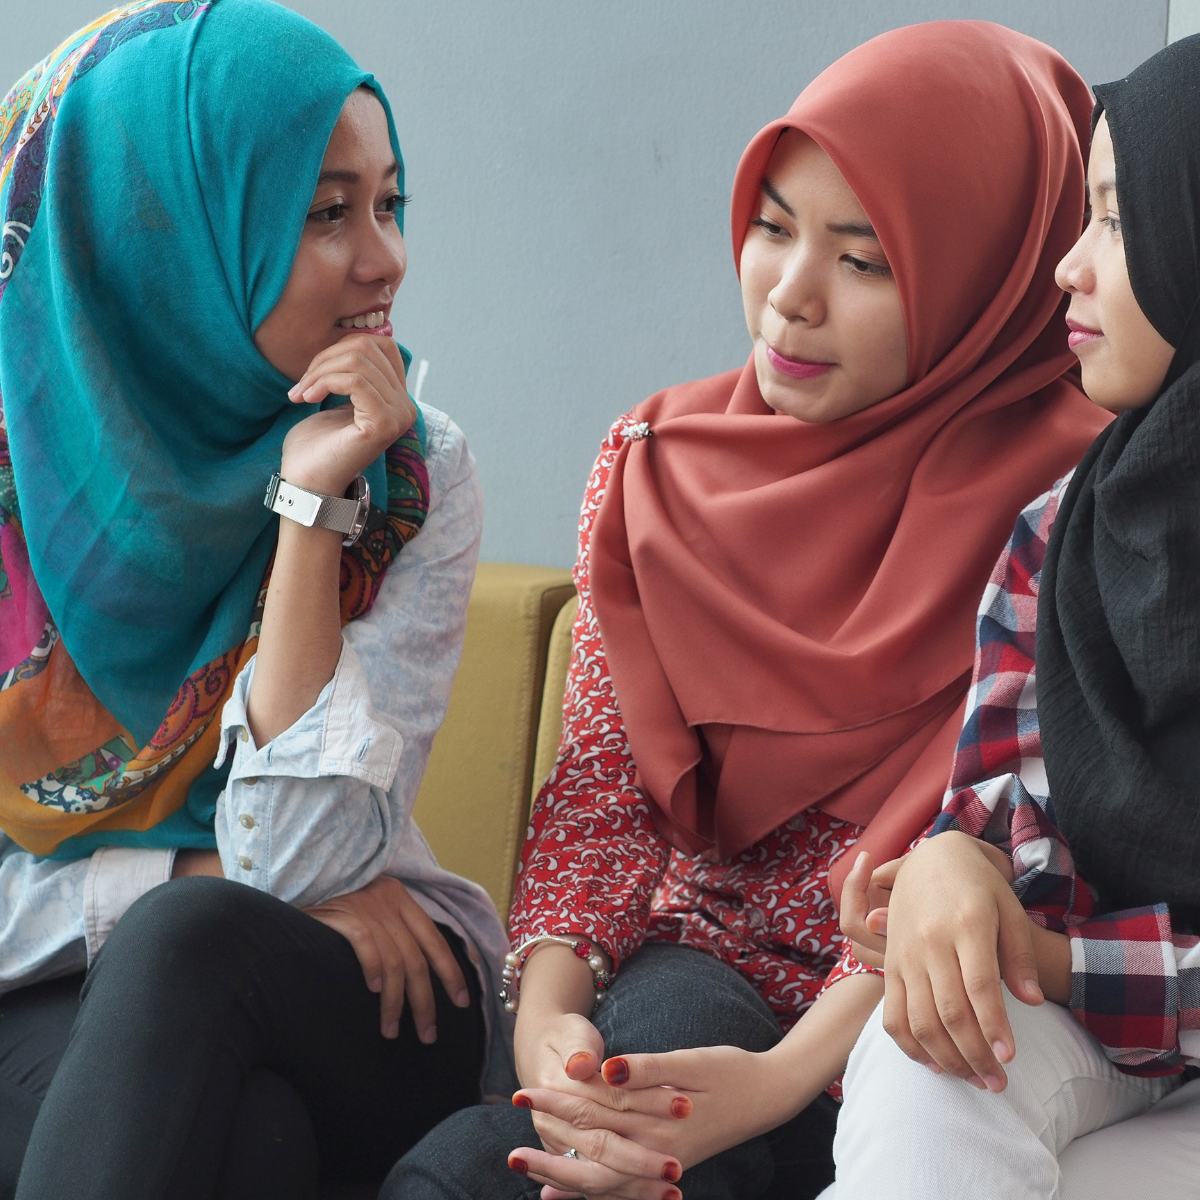 Three young women talking